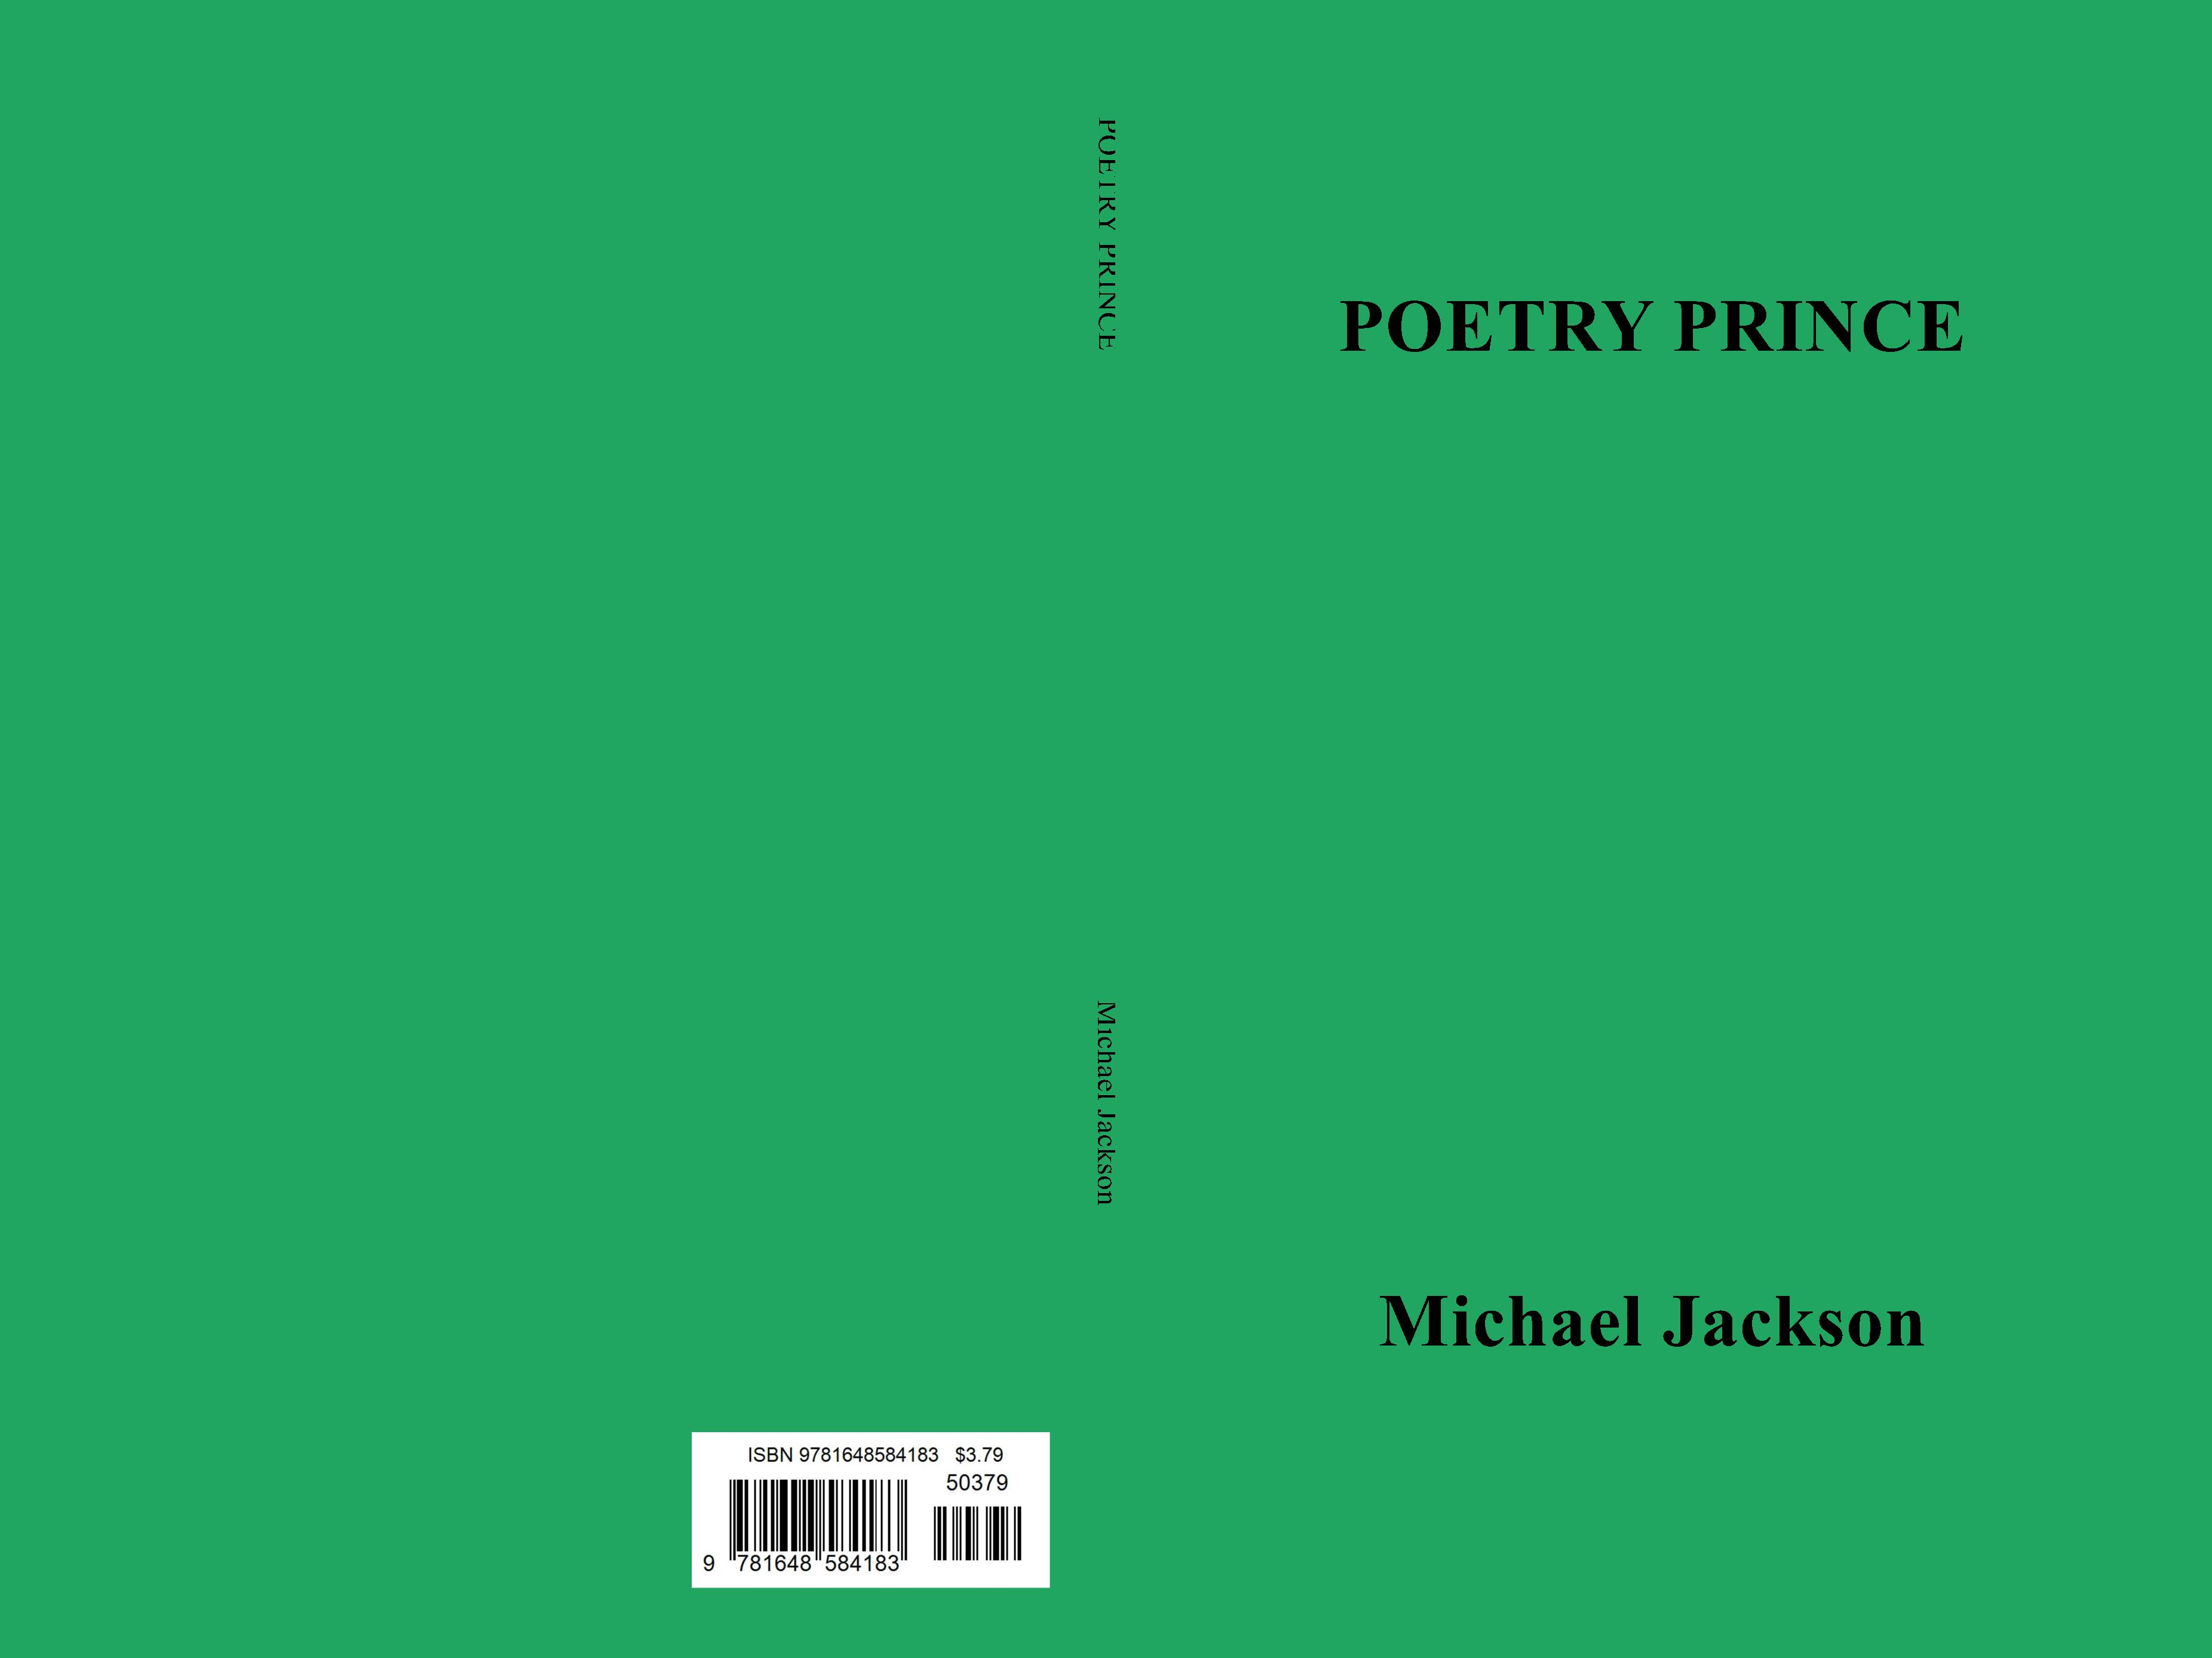 POETRY PRINCE cover image